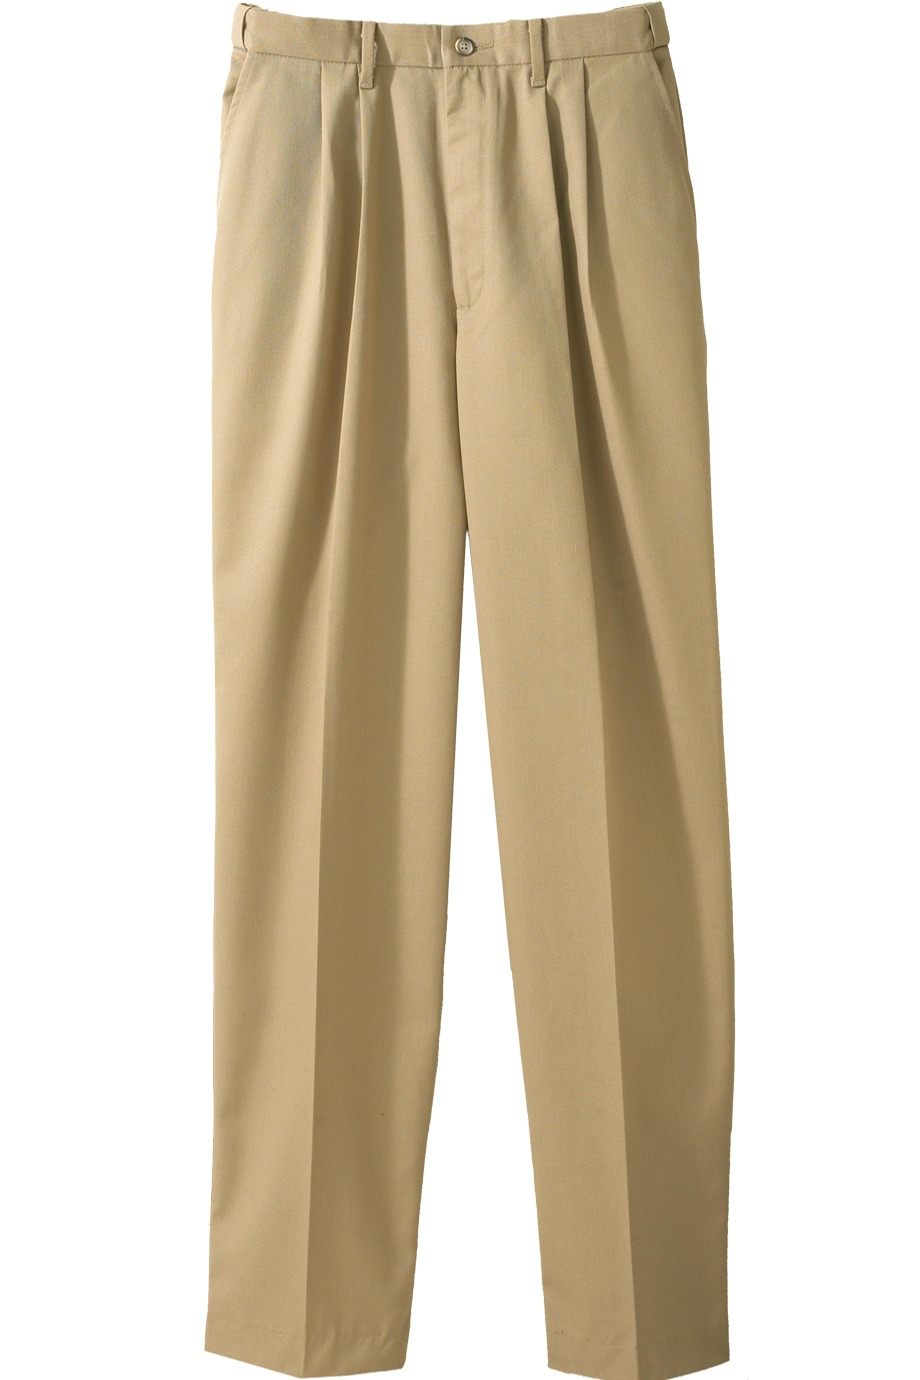 Edwards Garment 2678 - Men's Easy Fit Chino Pleated Pant